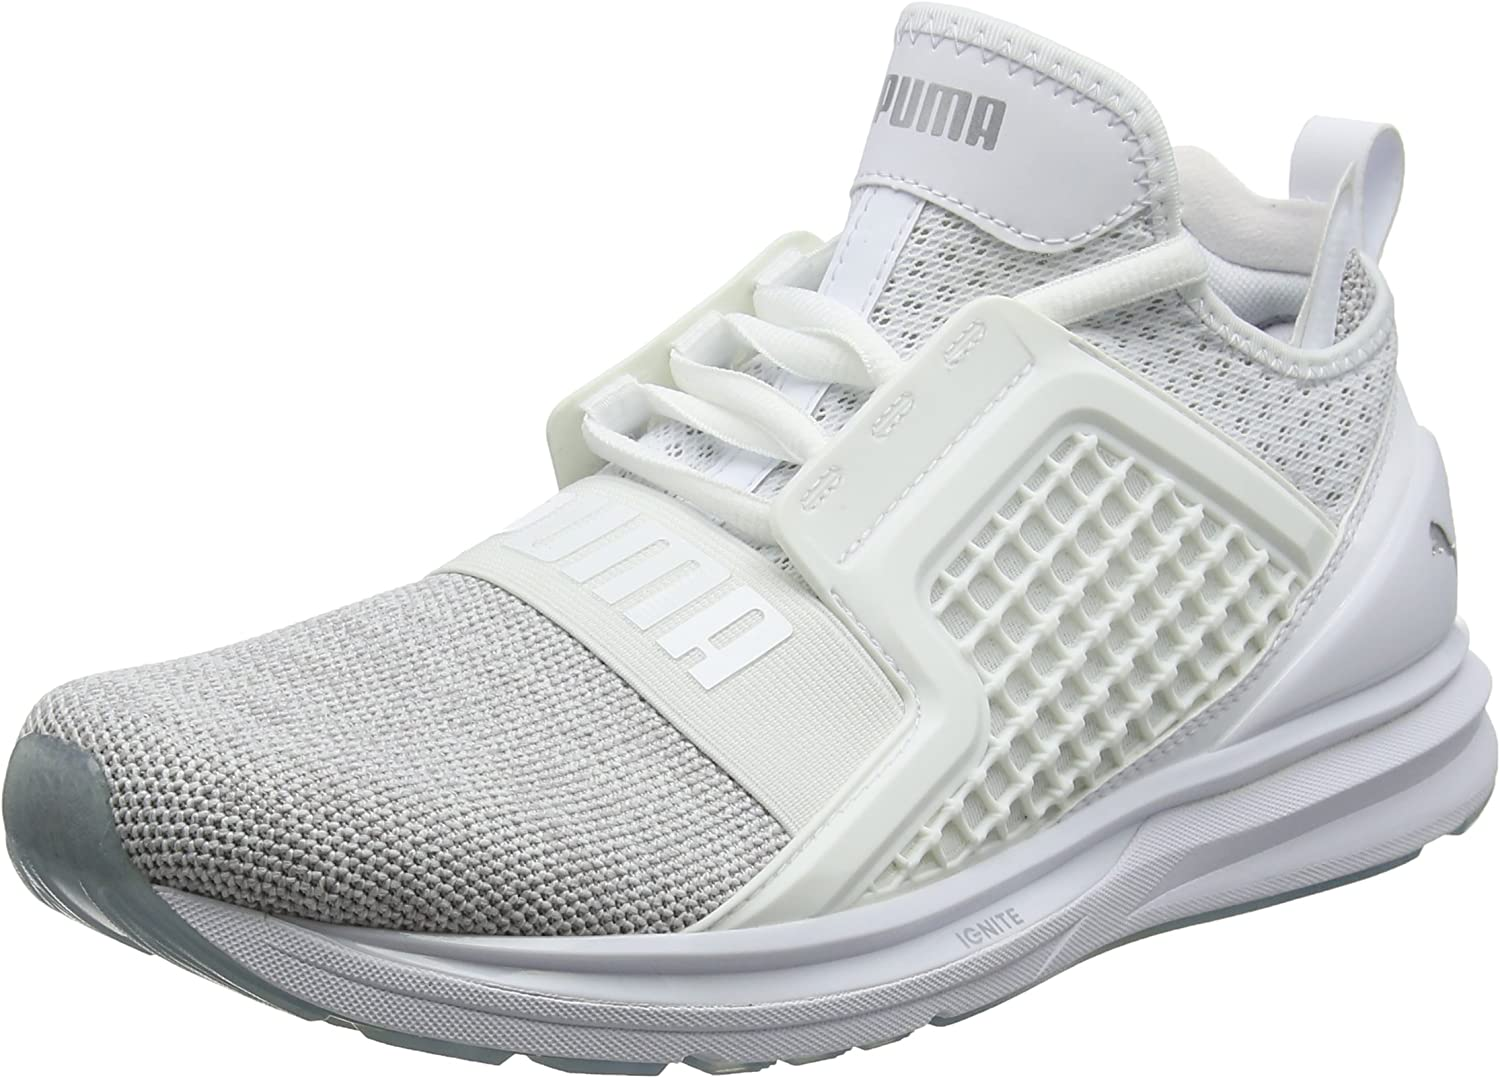 PUMA Ignite Limitless Knit, Chaussures de Cross Homme